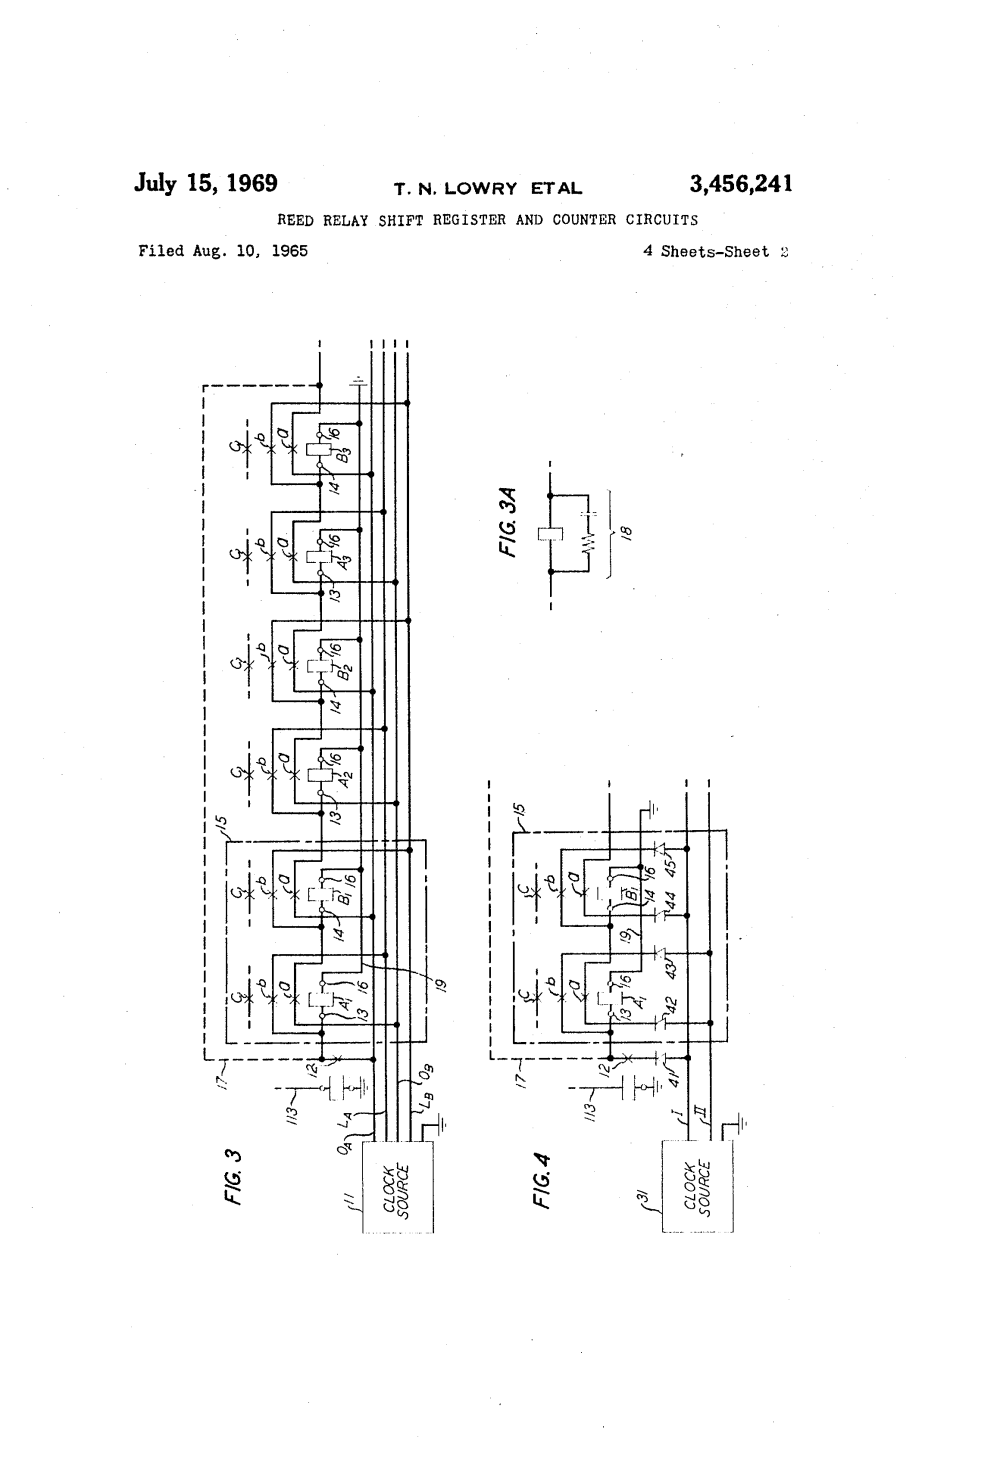 medium resolution of reed relay wiring diagram circuit diagrams patent us3456241 shift register and counter spdt micro 5 pin